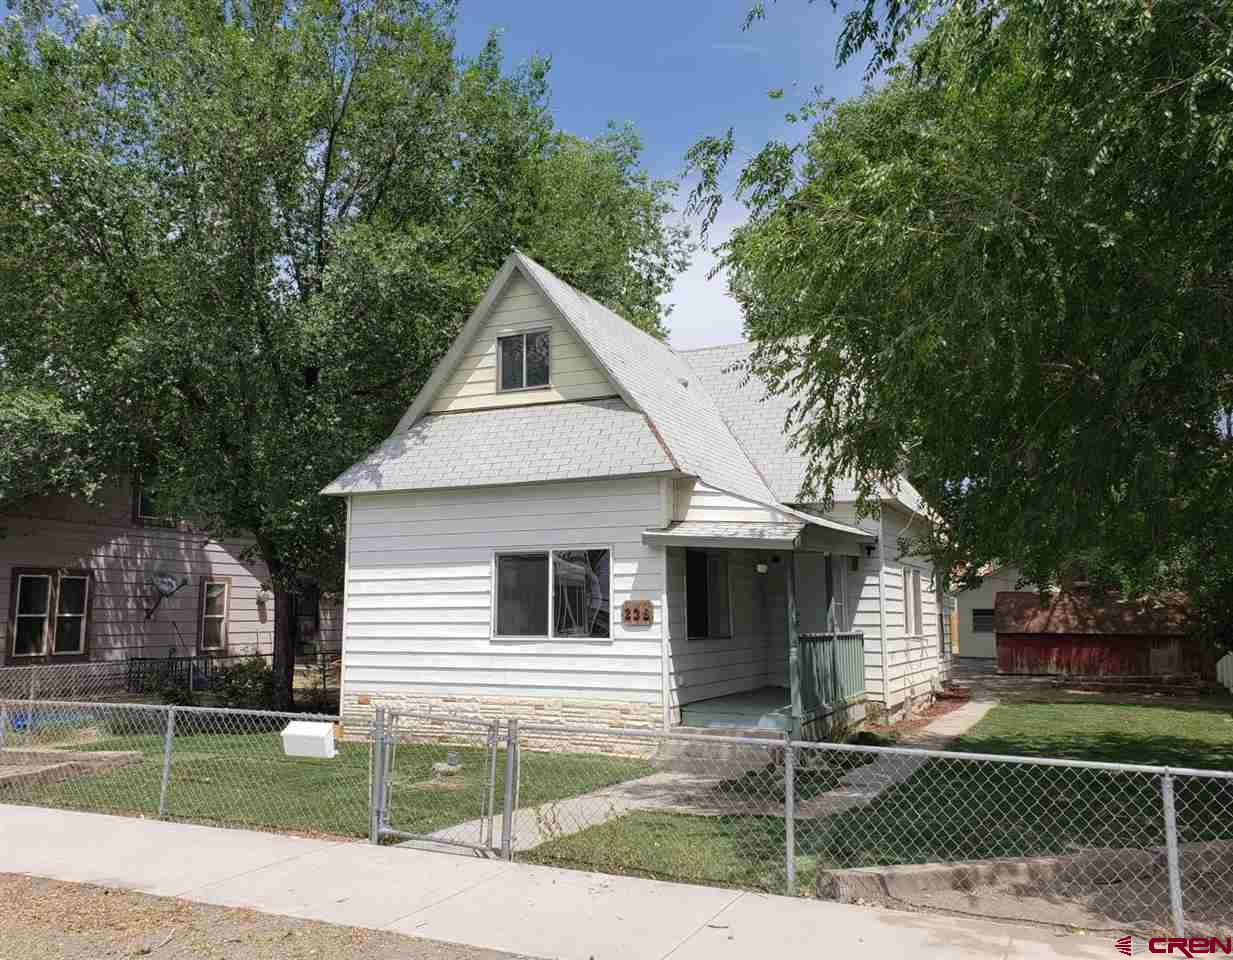 Lots of space in this 1555 sf 2 story home.  3 bedrooms and 1 bath.  High ceilings add to the open floor plan feel. This home is ready for renovation or remodel.  One car garage & parking off the alley.  Close to downtown Delta.  So many possibilities for this home.